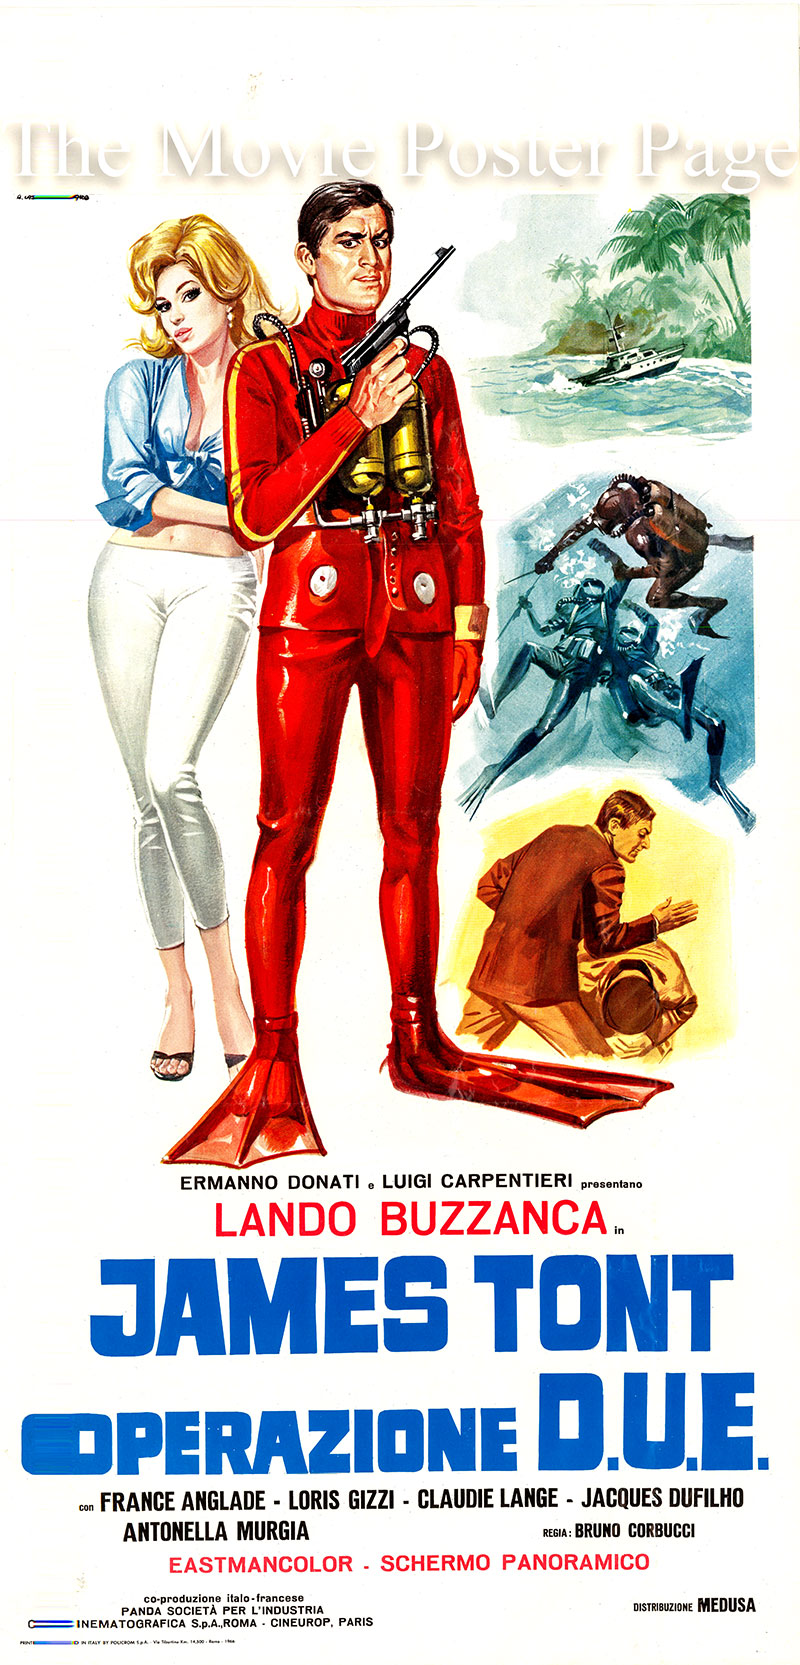 Pictured is an Italian locandina poster for the 1966 Bruno Corbucci film James Tont Operatione D.U.E. starring Lando Buzzanca as James Tont.